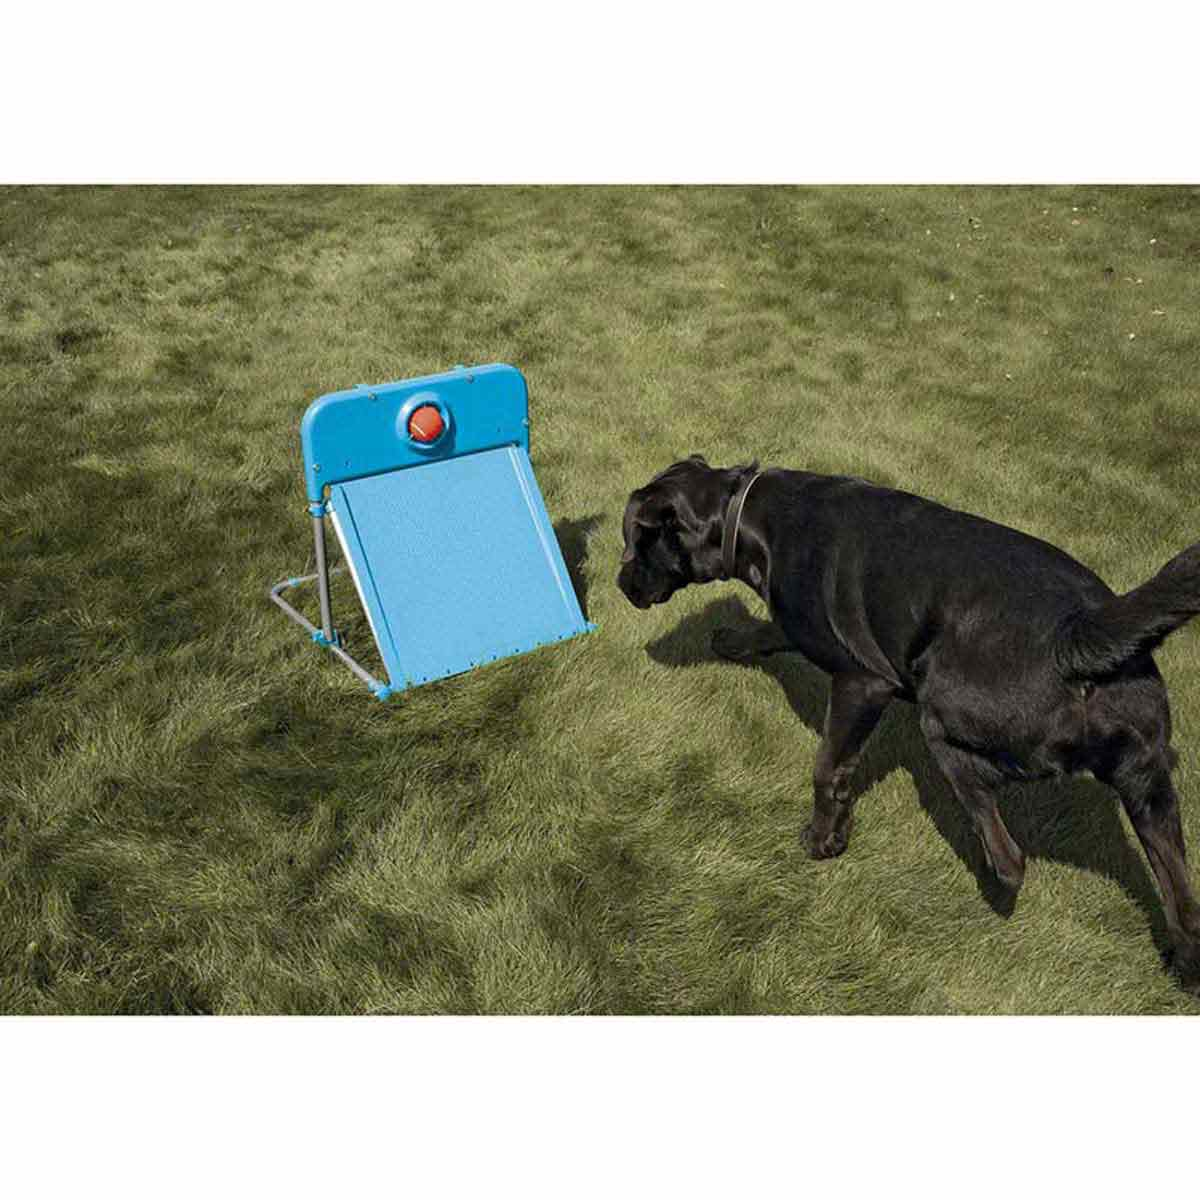 Fly Ball Training Equipment for Dogs